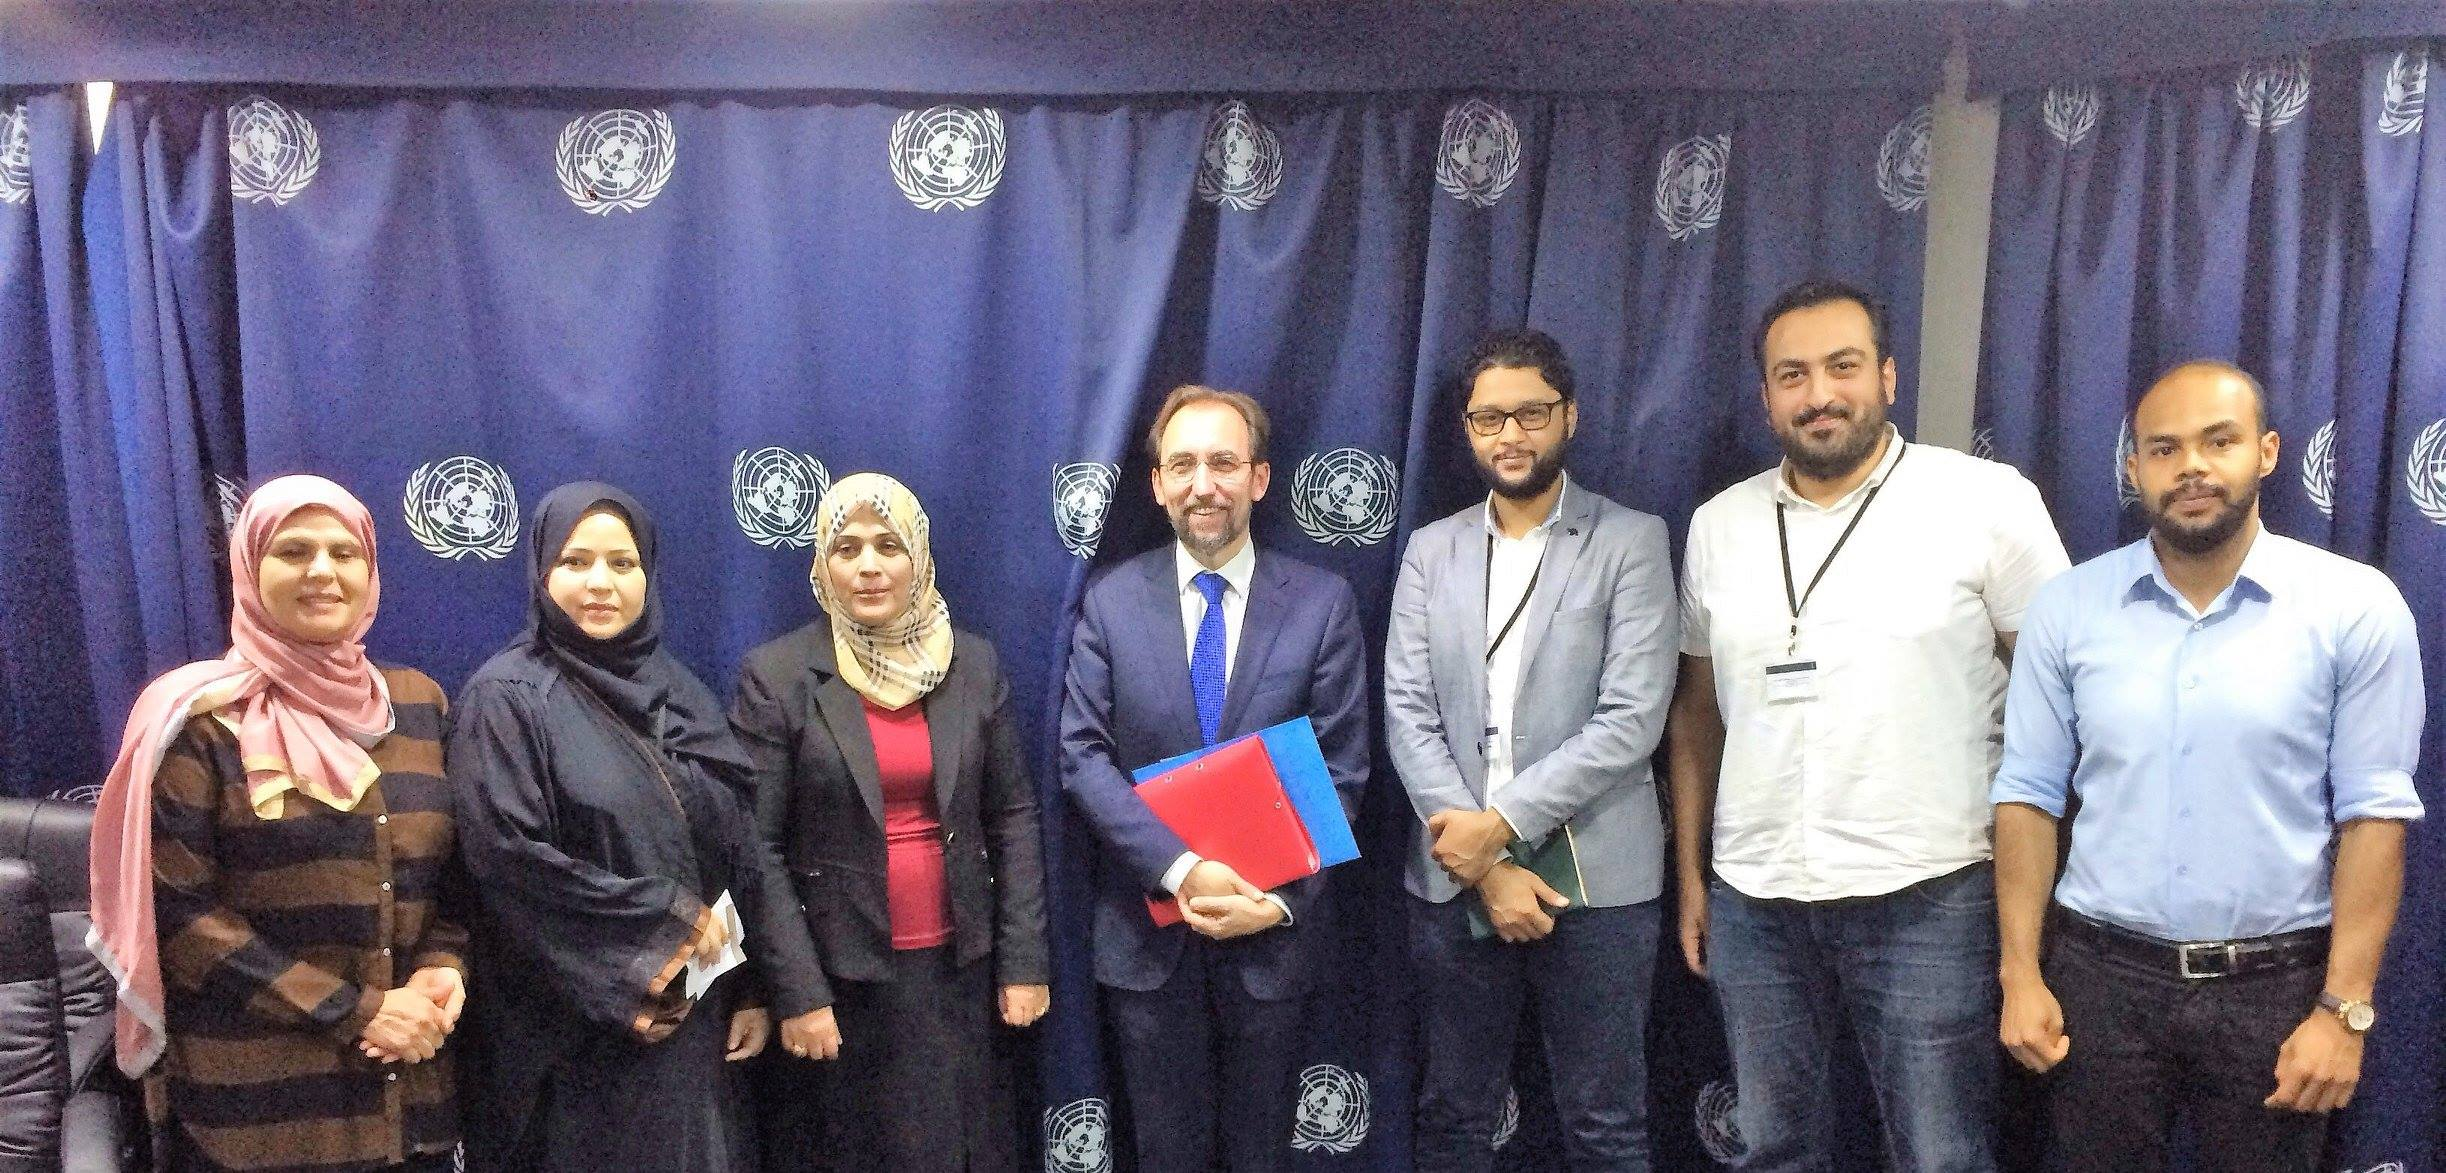 'The Platform' in meetings with UN Libya Envoy and UN High Commissioner for Human Rights: Disregard for international mechanisms of accountability is the primary obstacle for peace.